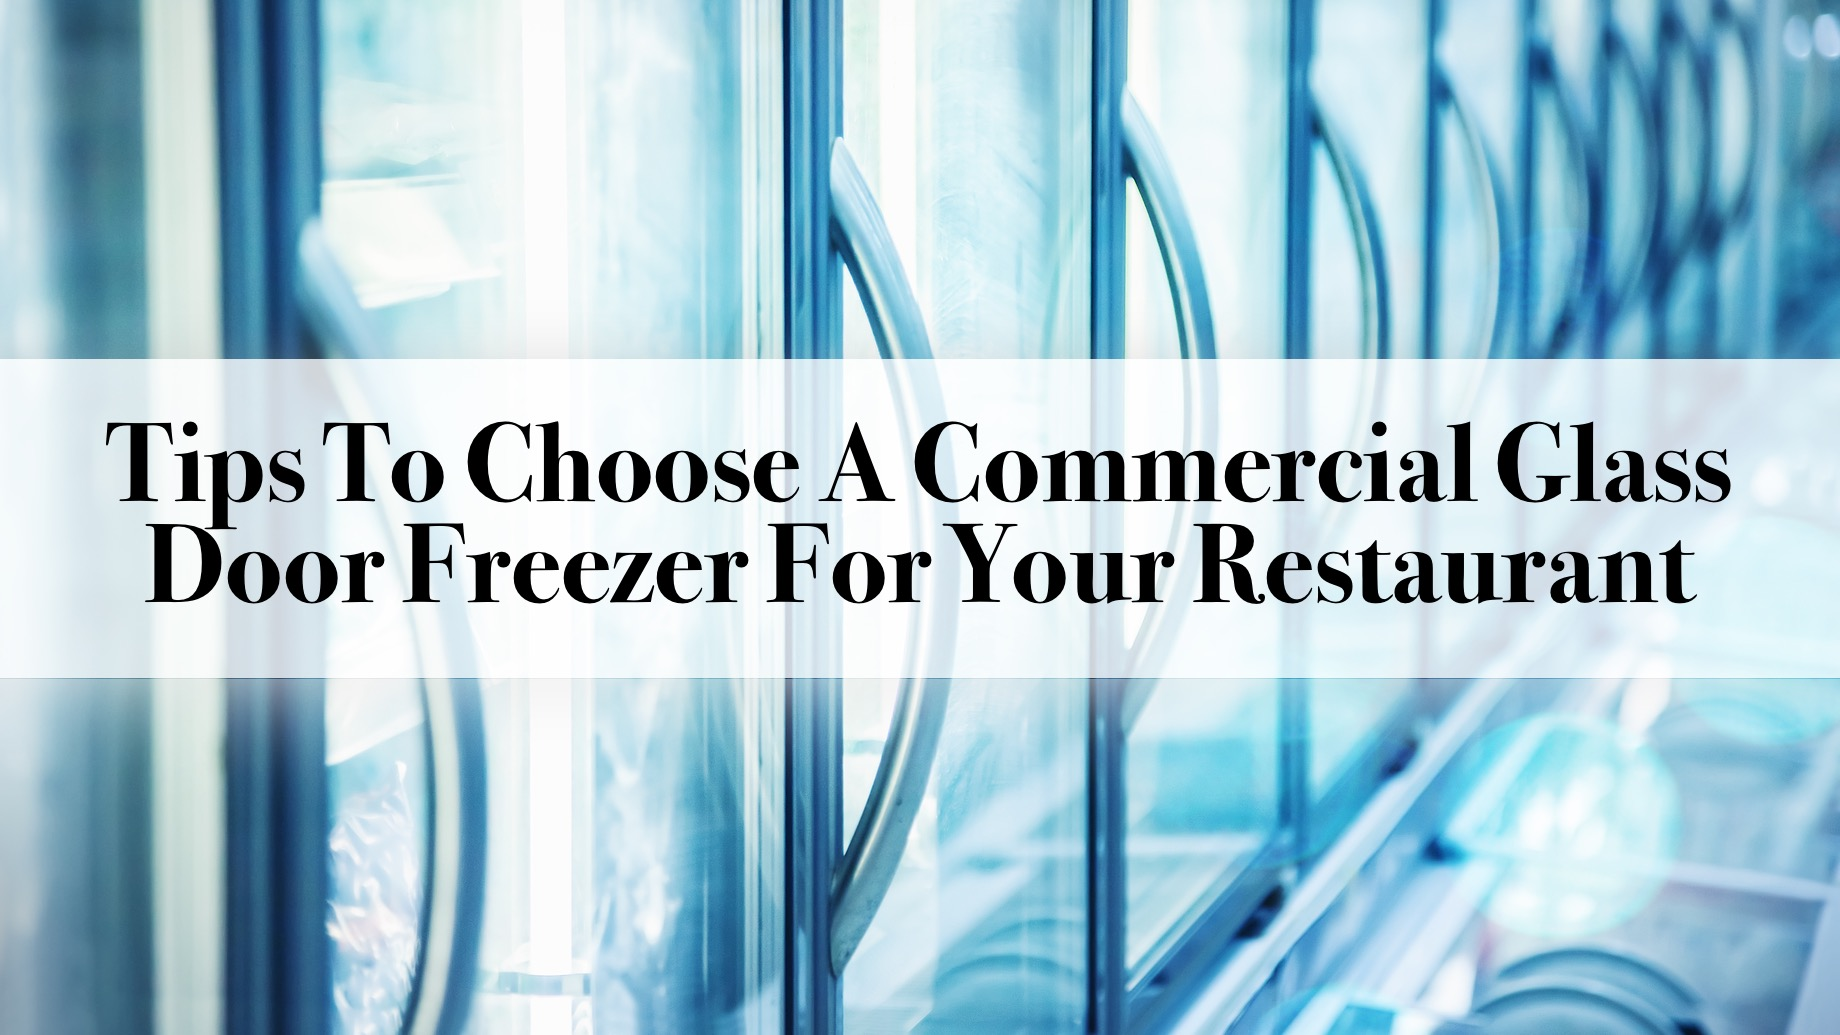 Tips To Choose A Commercial Glass Door Freezer For Your Restaurant